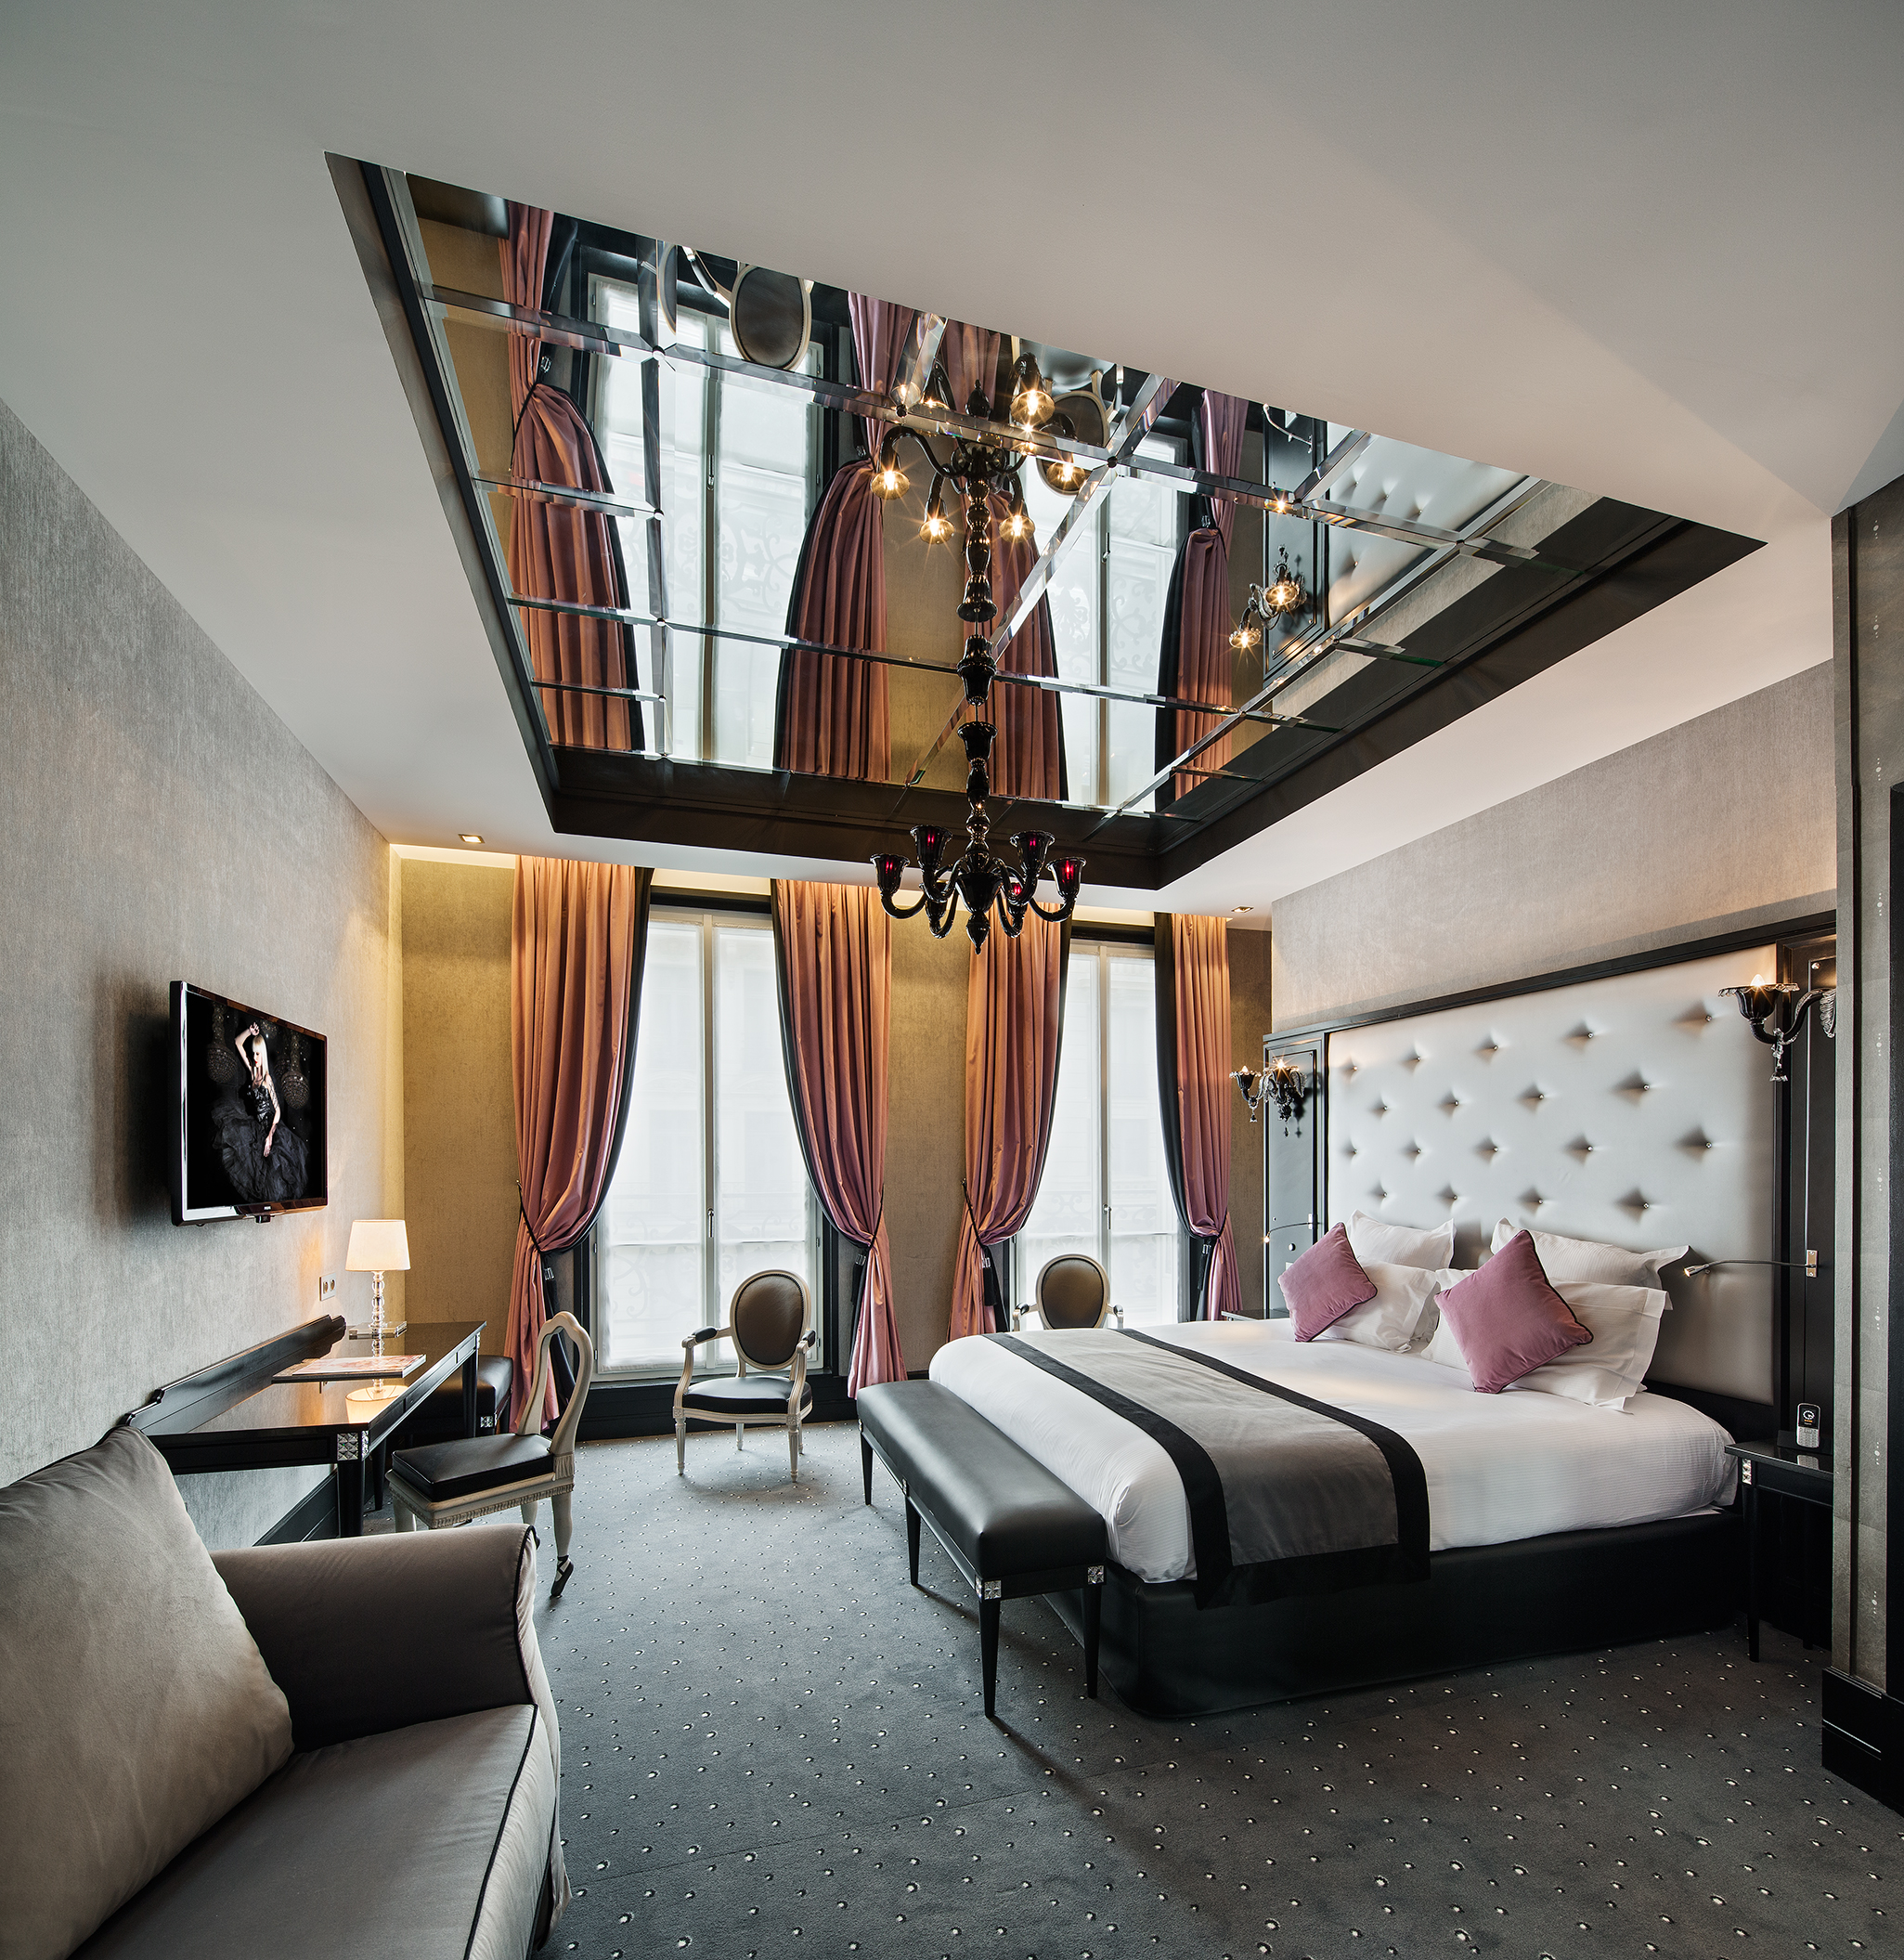 Maison Albar Hotels Le Diamond Executive Suite and Sofa